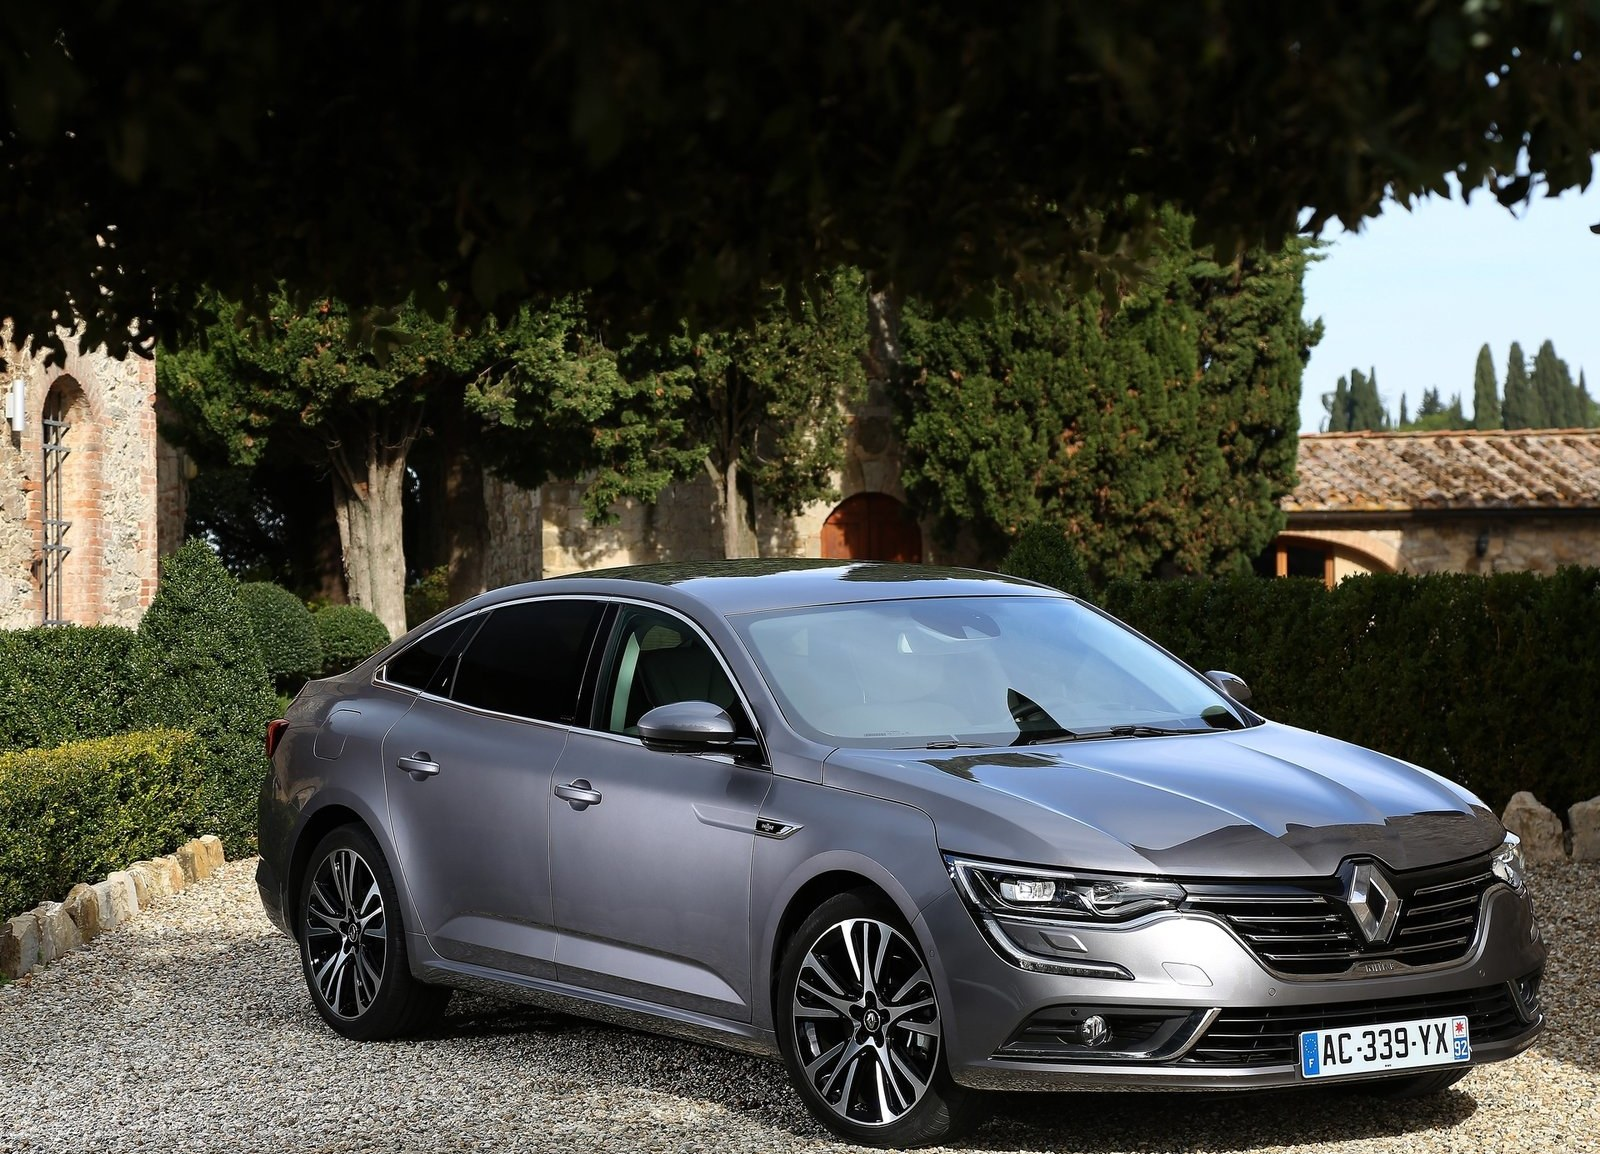 2016 Renault Talisman Exterior (Photo 3 of 14)